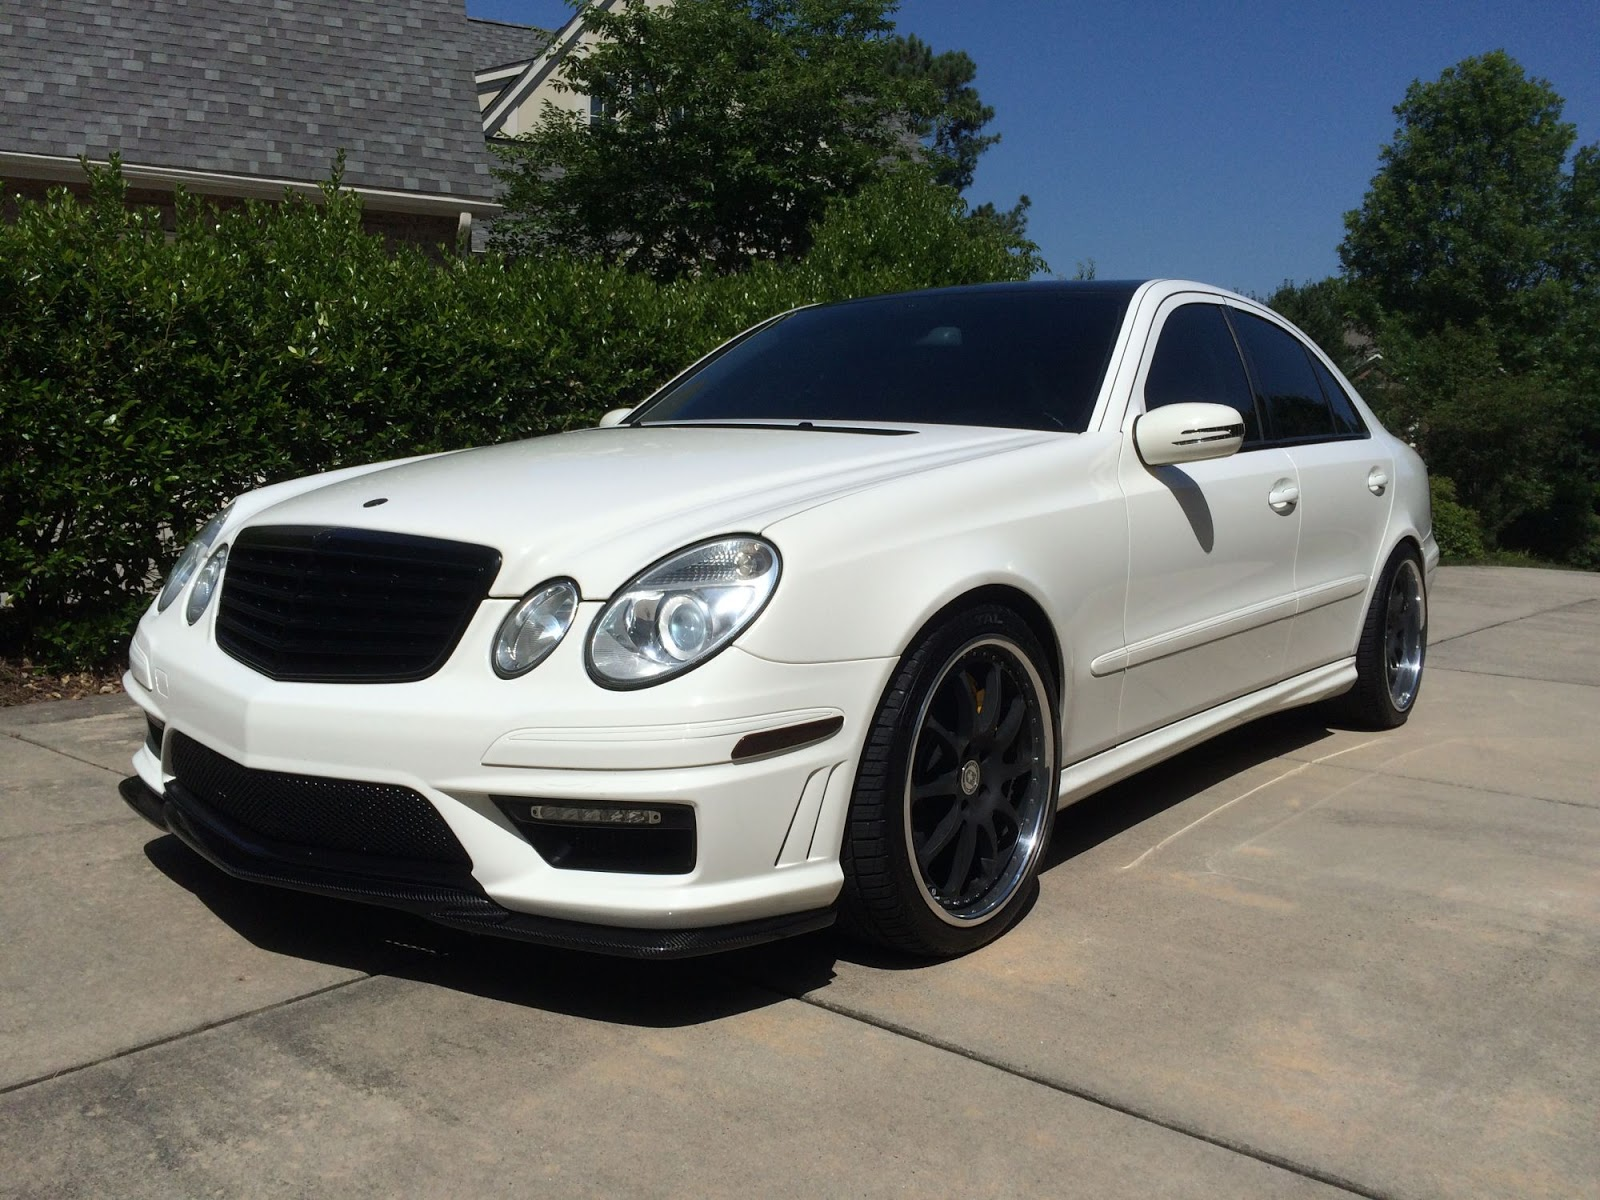 2004 mercedes benz w211 e55 amg on hre performance wheels. Black Bedroom Furniture Sets. Home Design Ideas